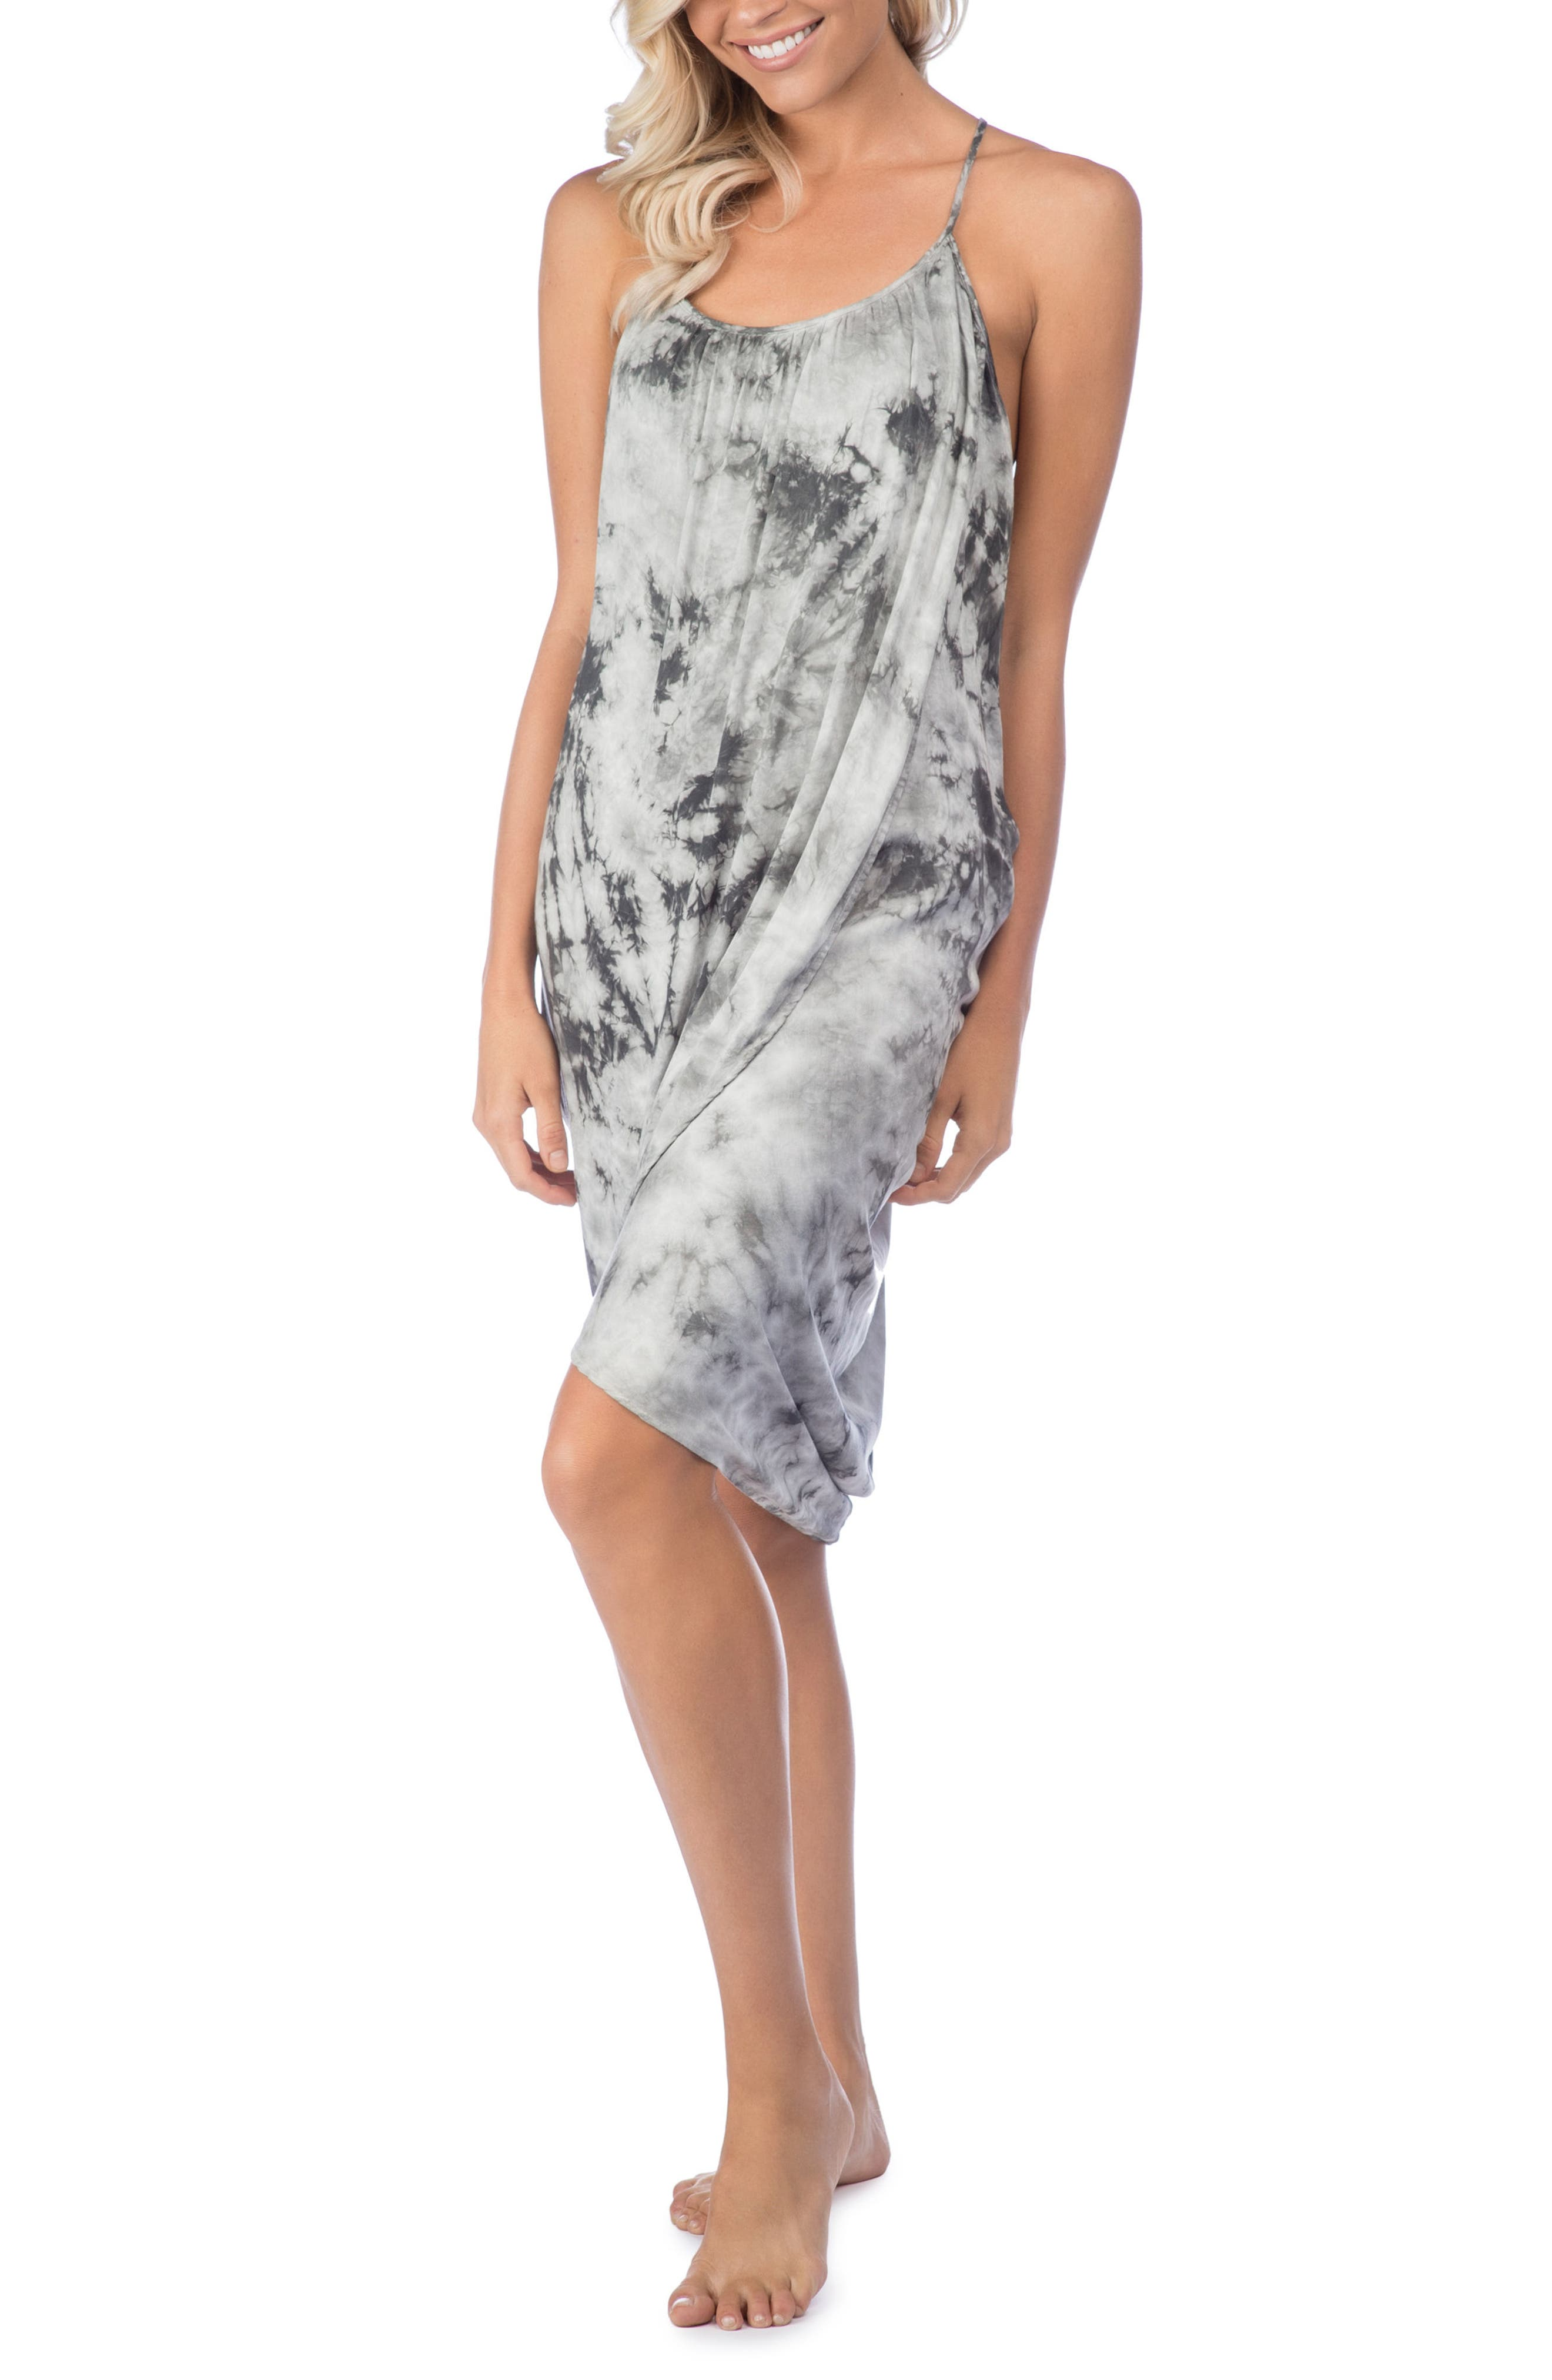 Crystal Forest Genvieve Cover-Up Dress,                         Main,                         color, 020